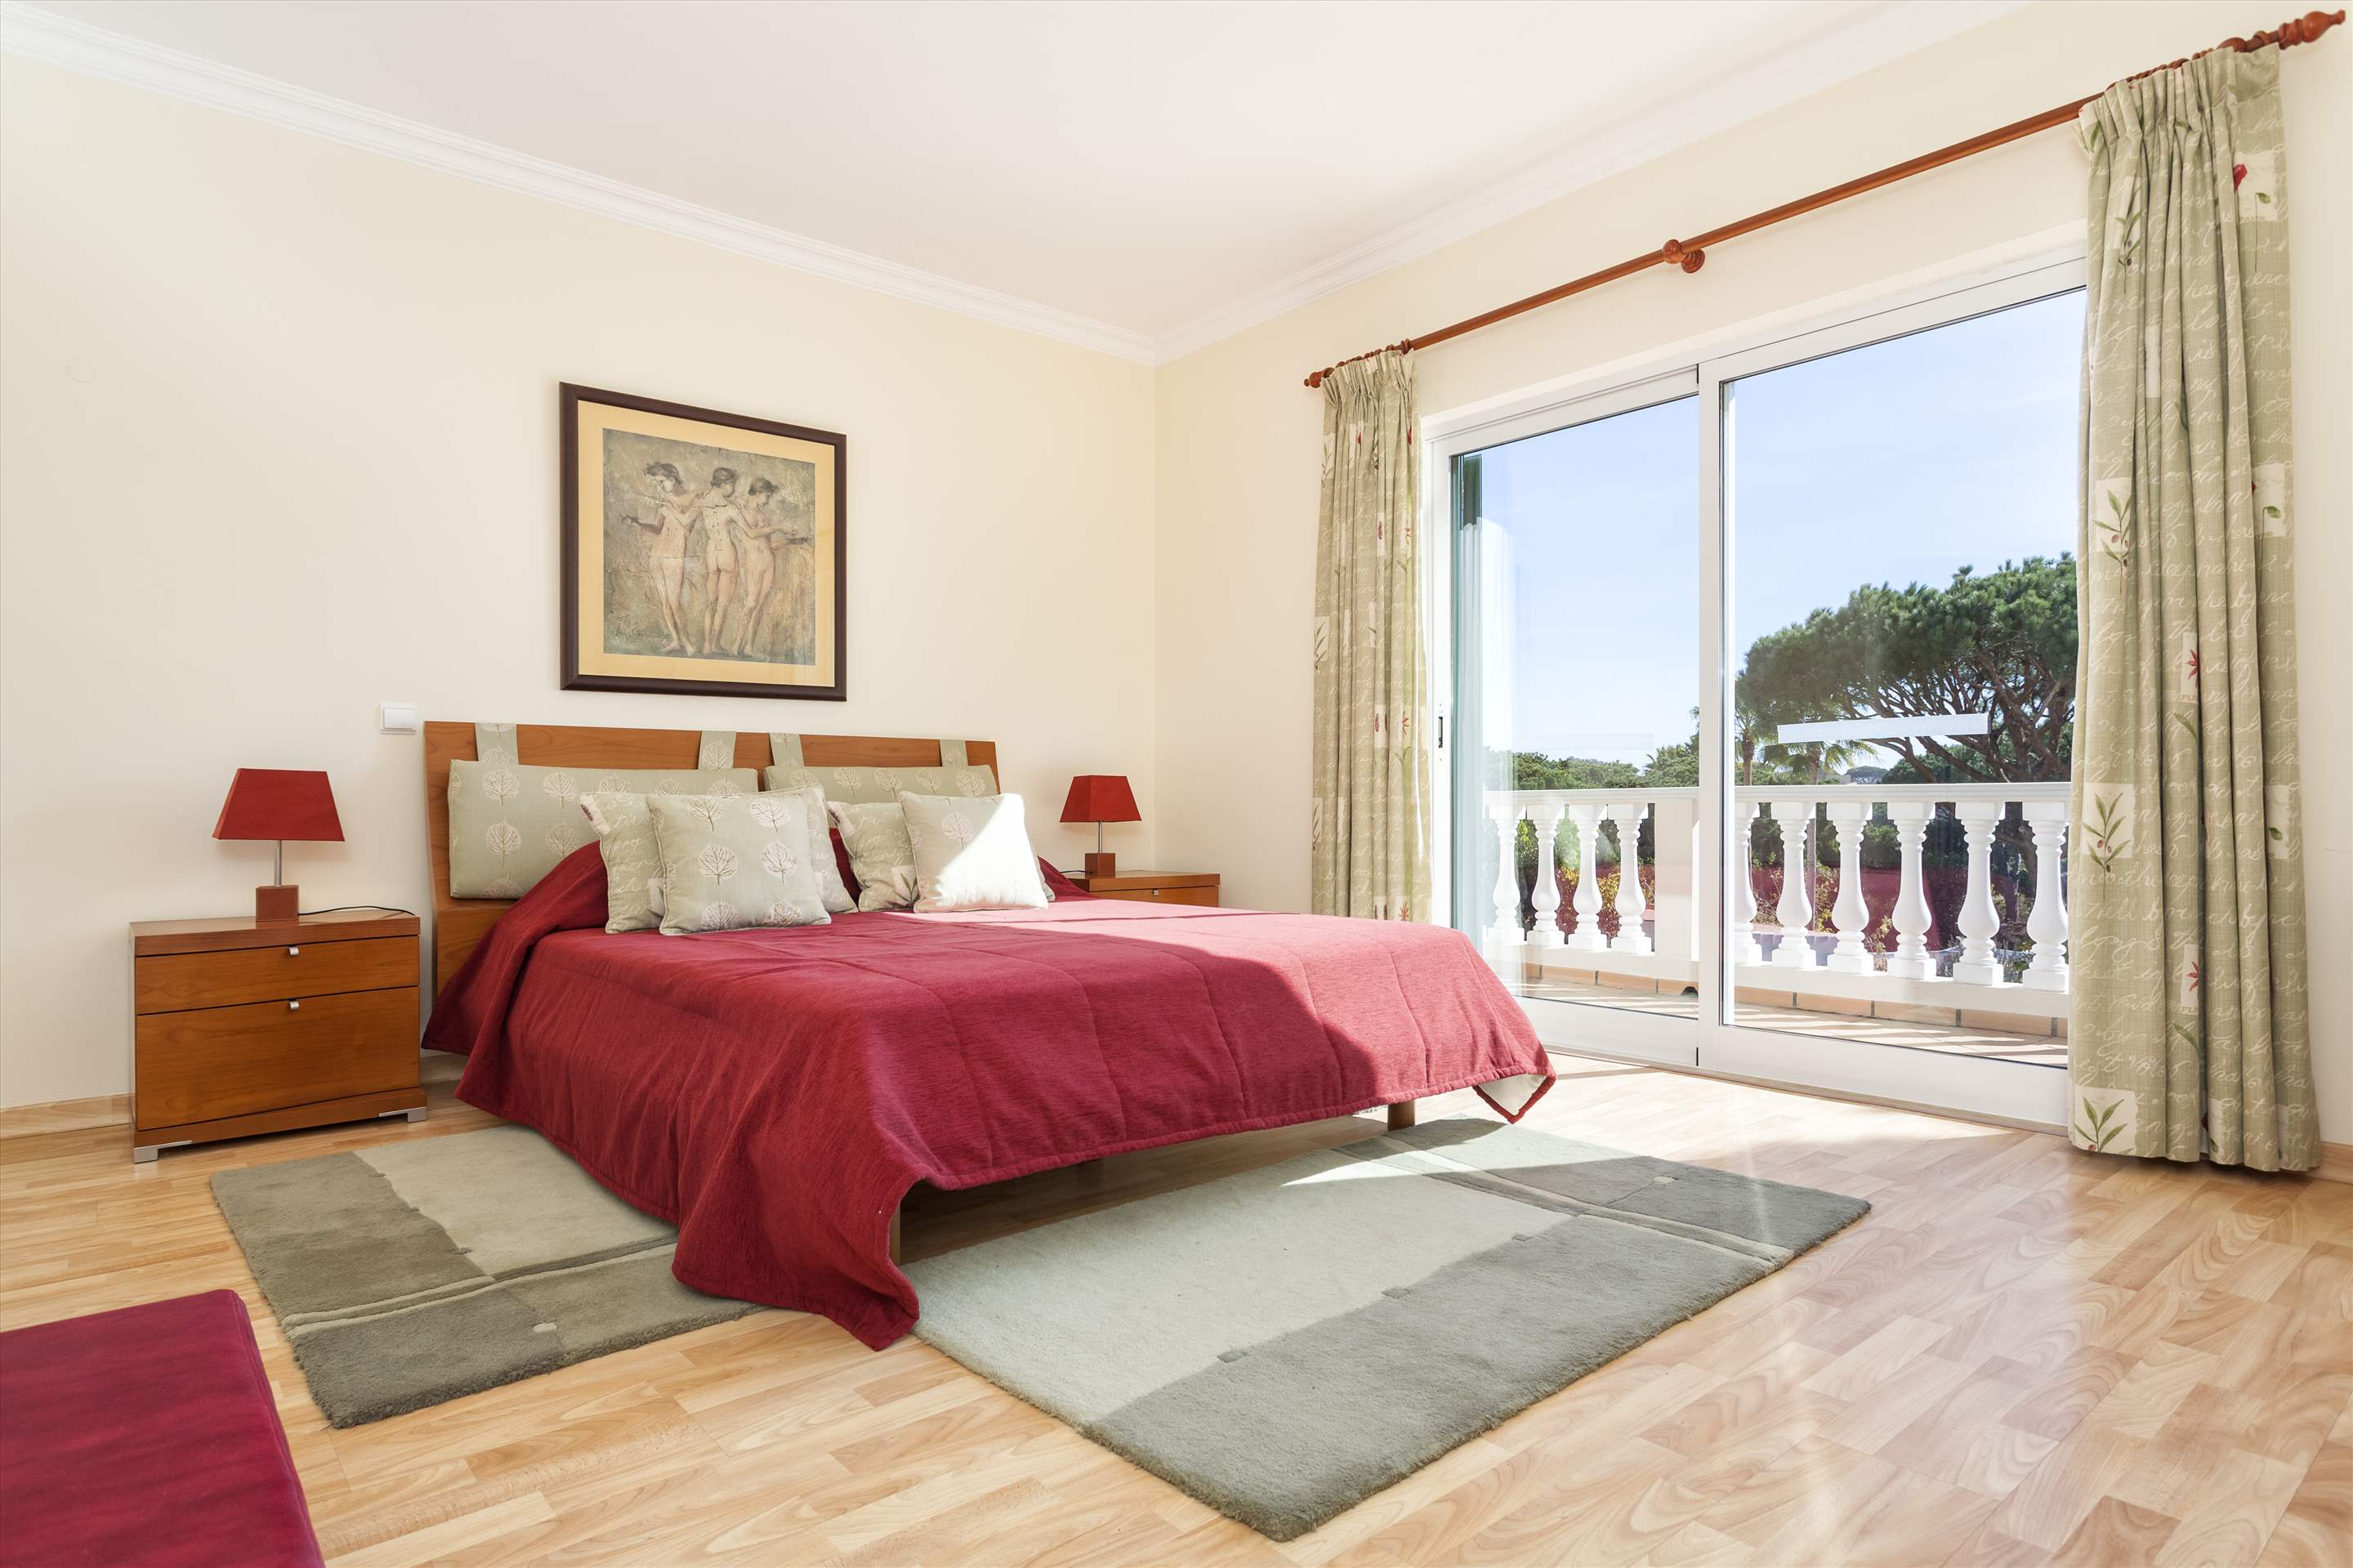 Villa Natasha, 4 bedroom villa in Vale do Lobo, Algarve Photo #12